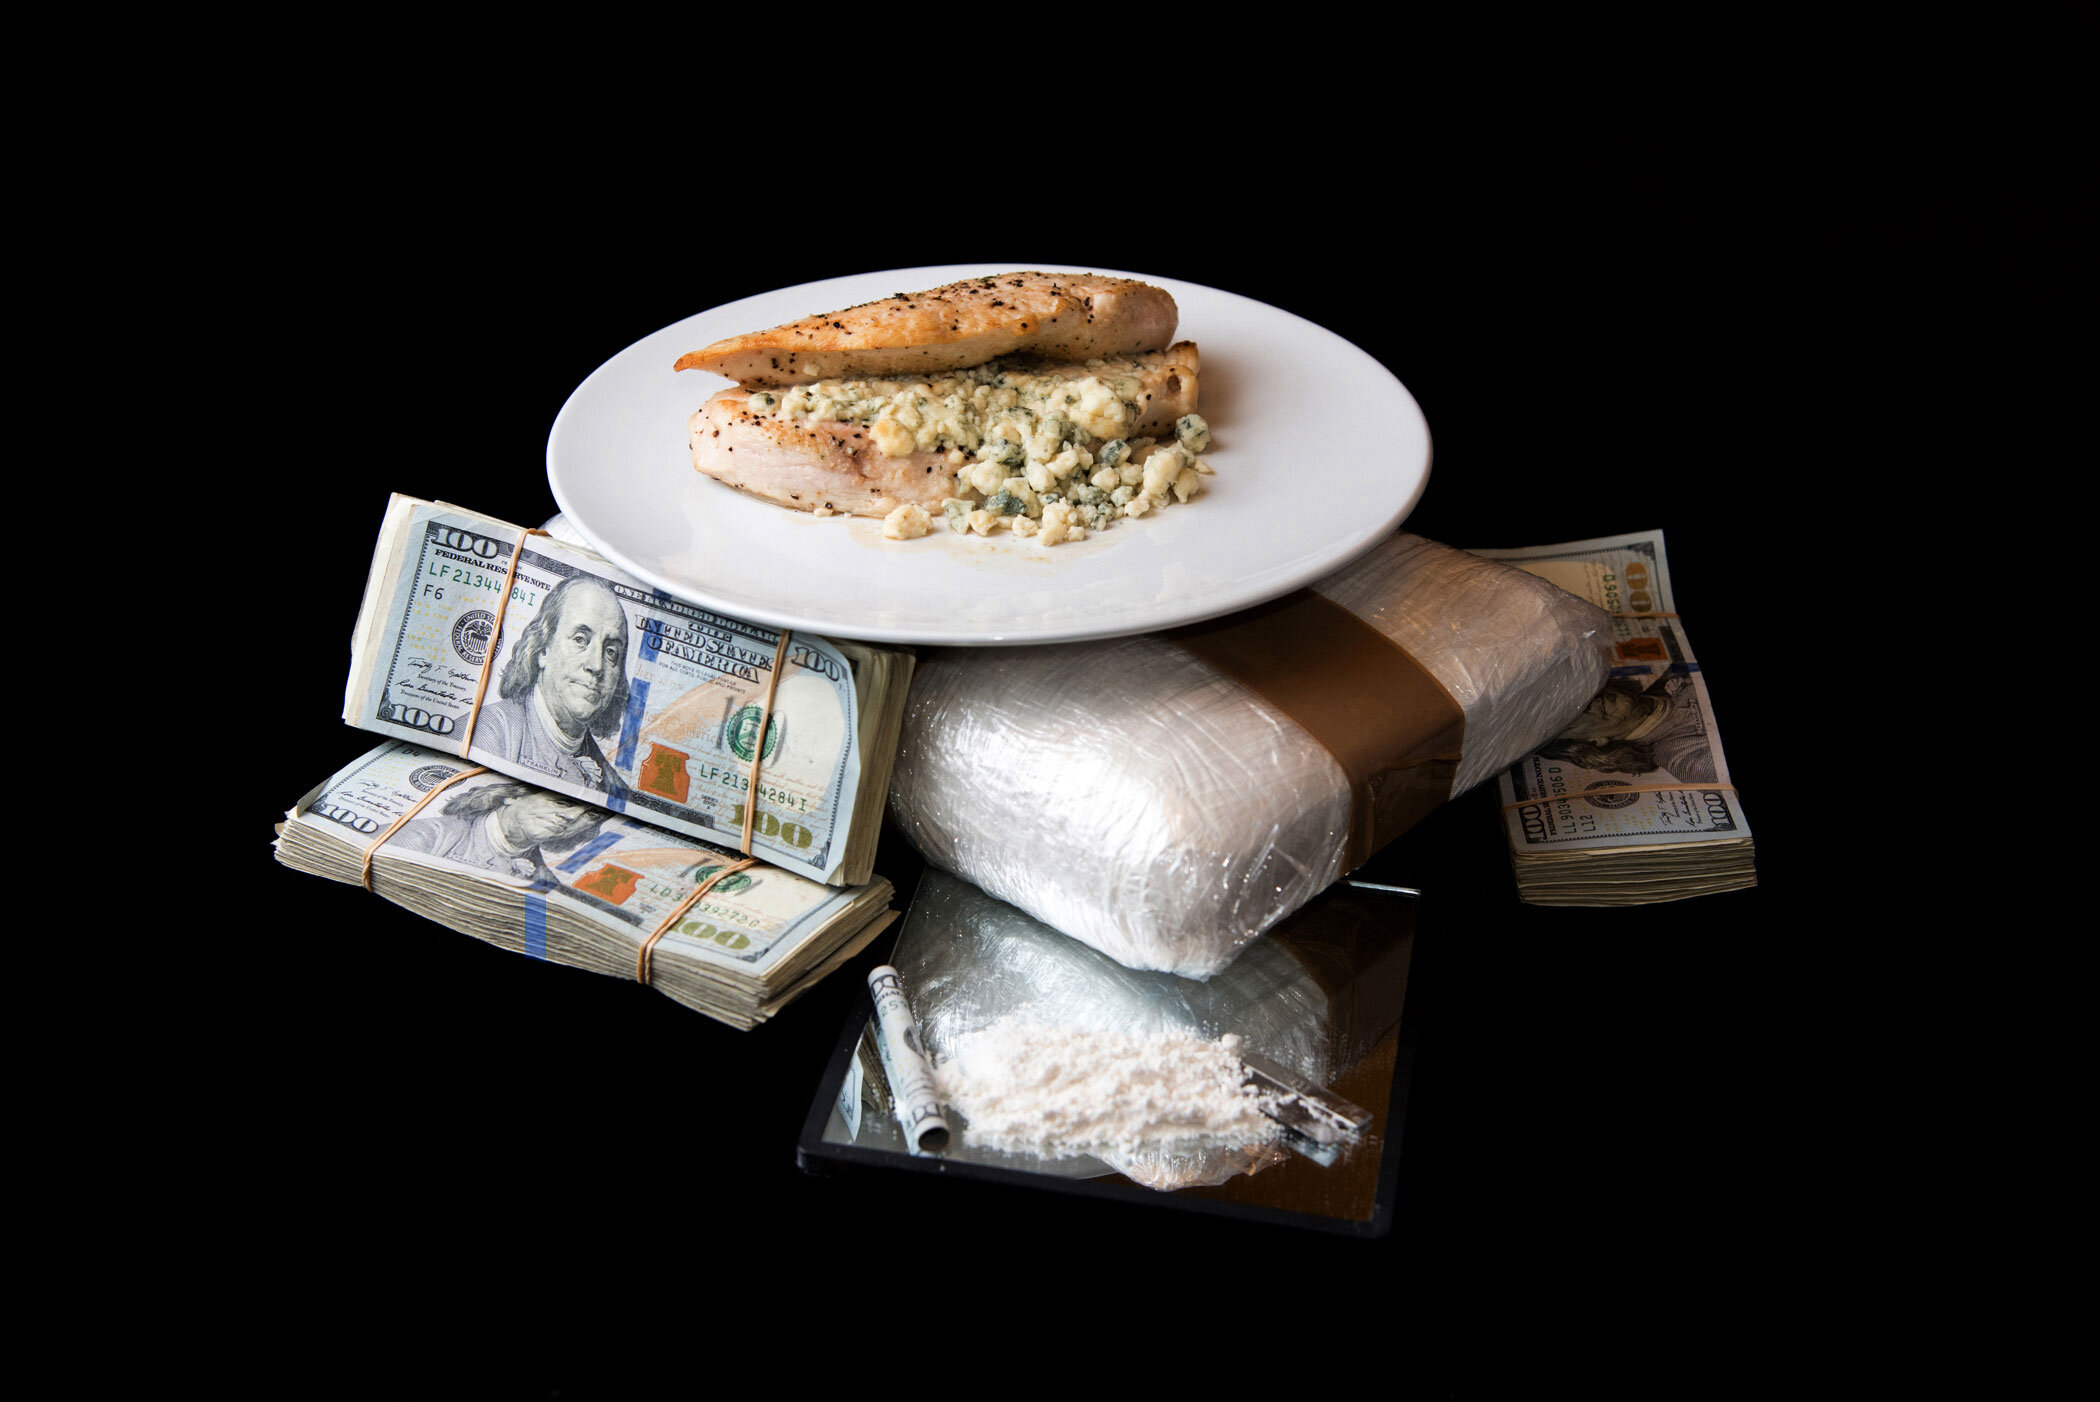 """""""Countin' that paper like loose leaf, yeah, Gettin' that chicken with bleu cheese, yeah"""" - Lil Uzi Vert, """"Bad and Boujee"""""""